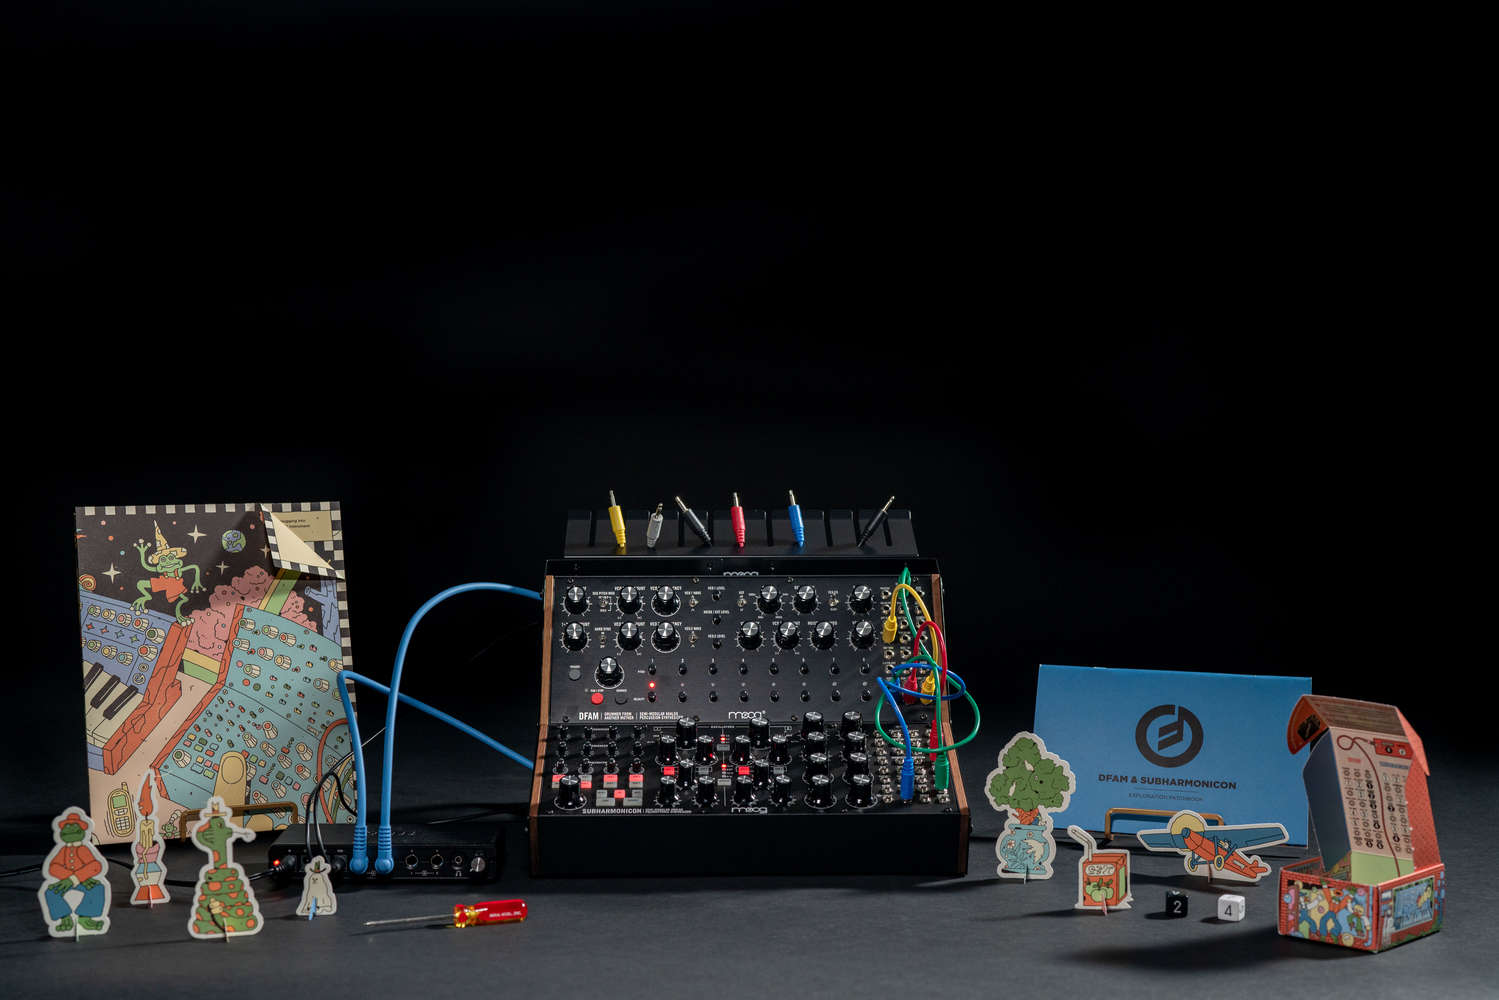 Moog Sound Studio Offers a Complete Synth Studio Experience